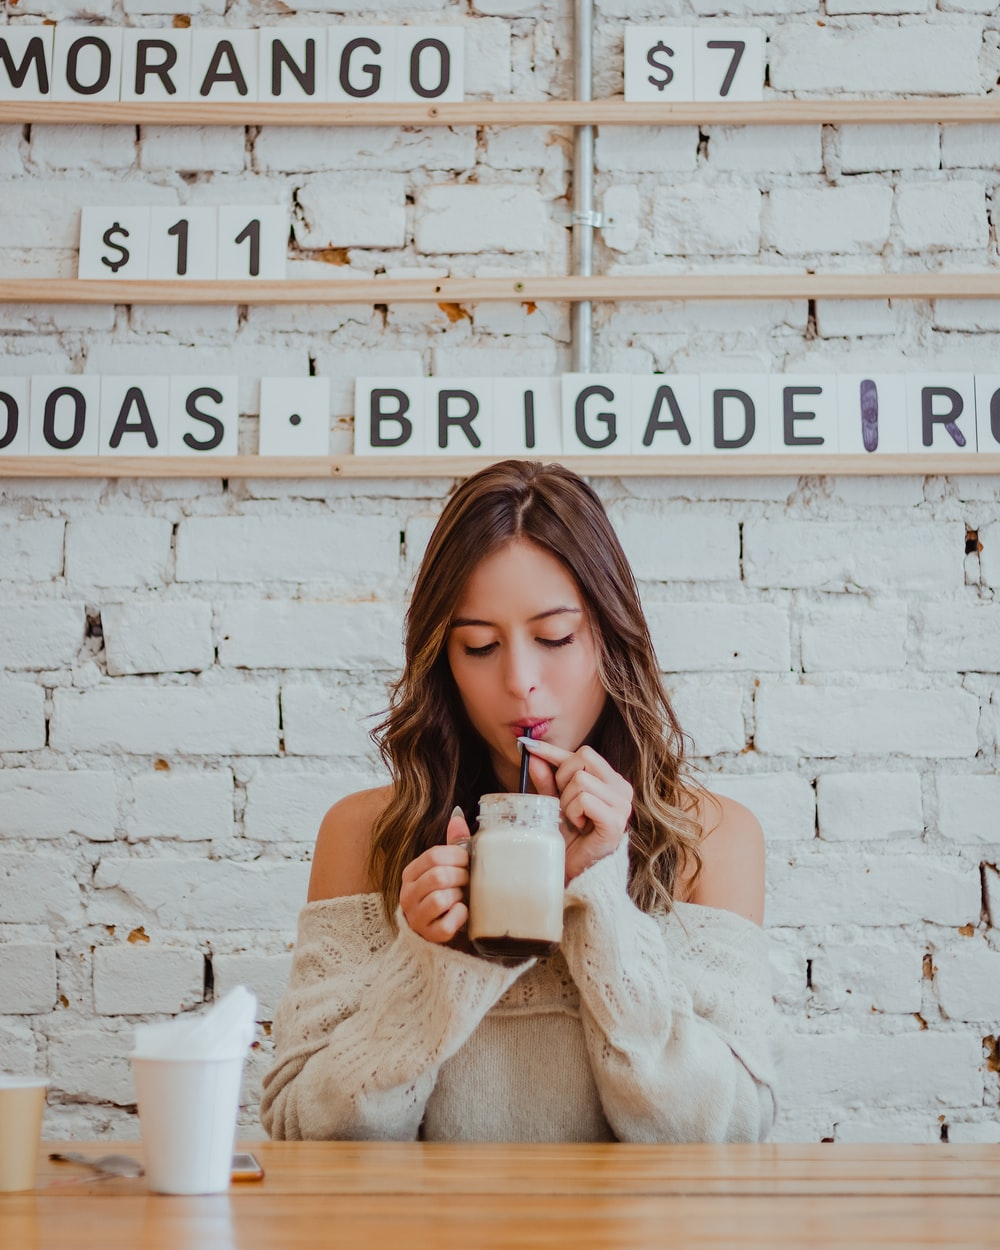 woman sipping on beverage